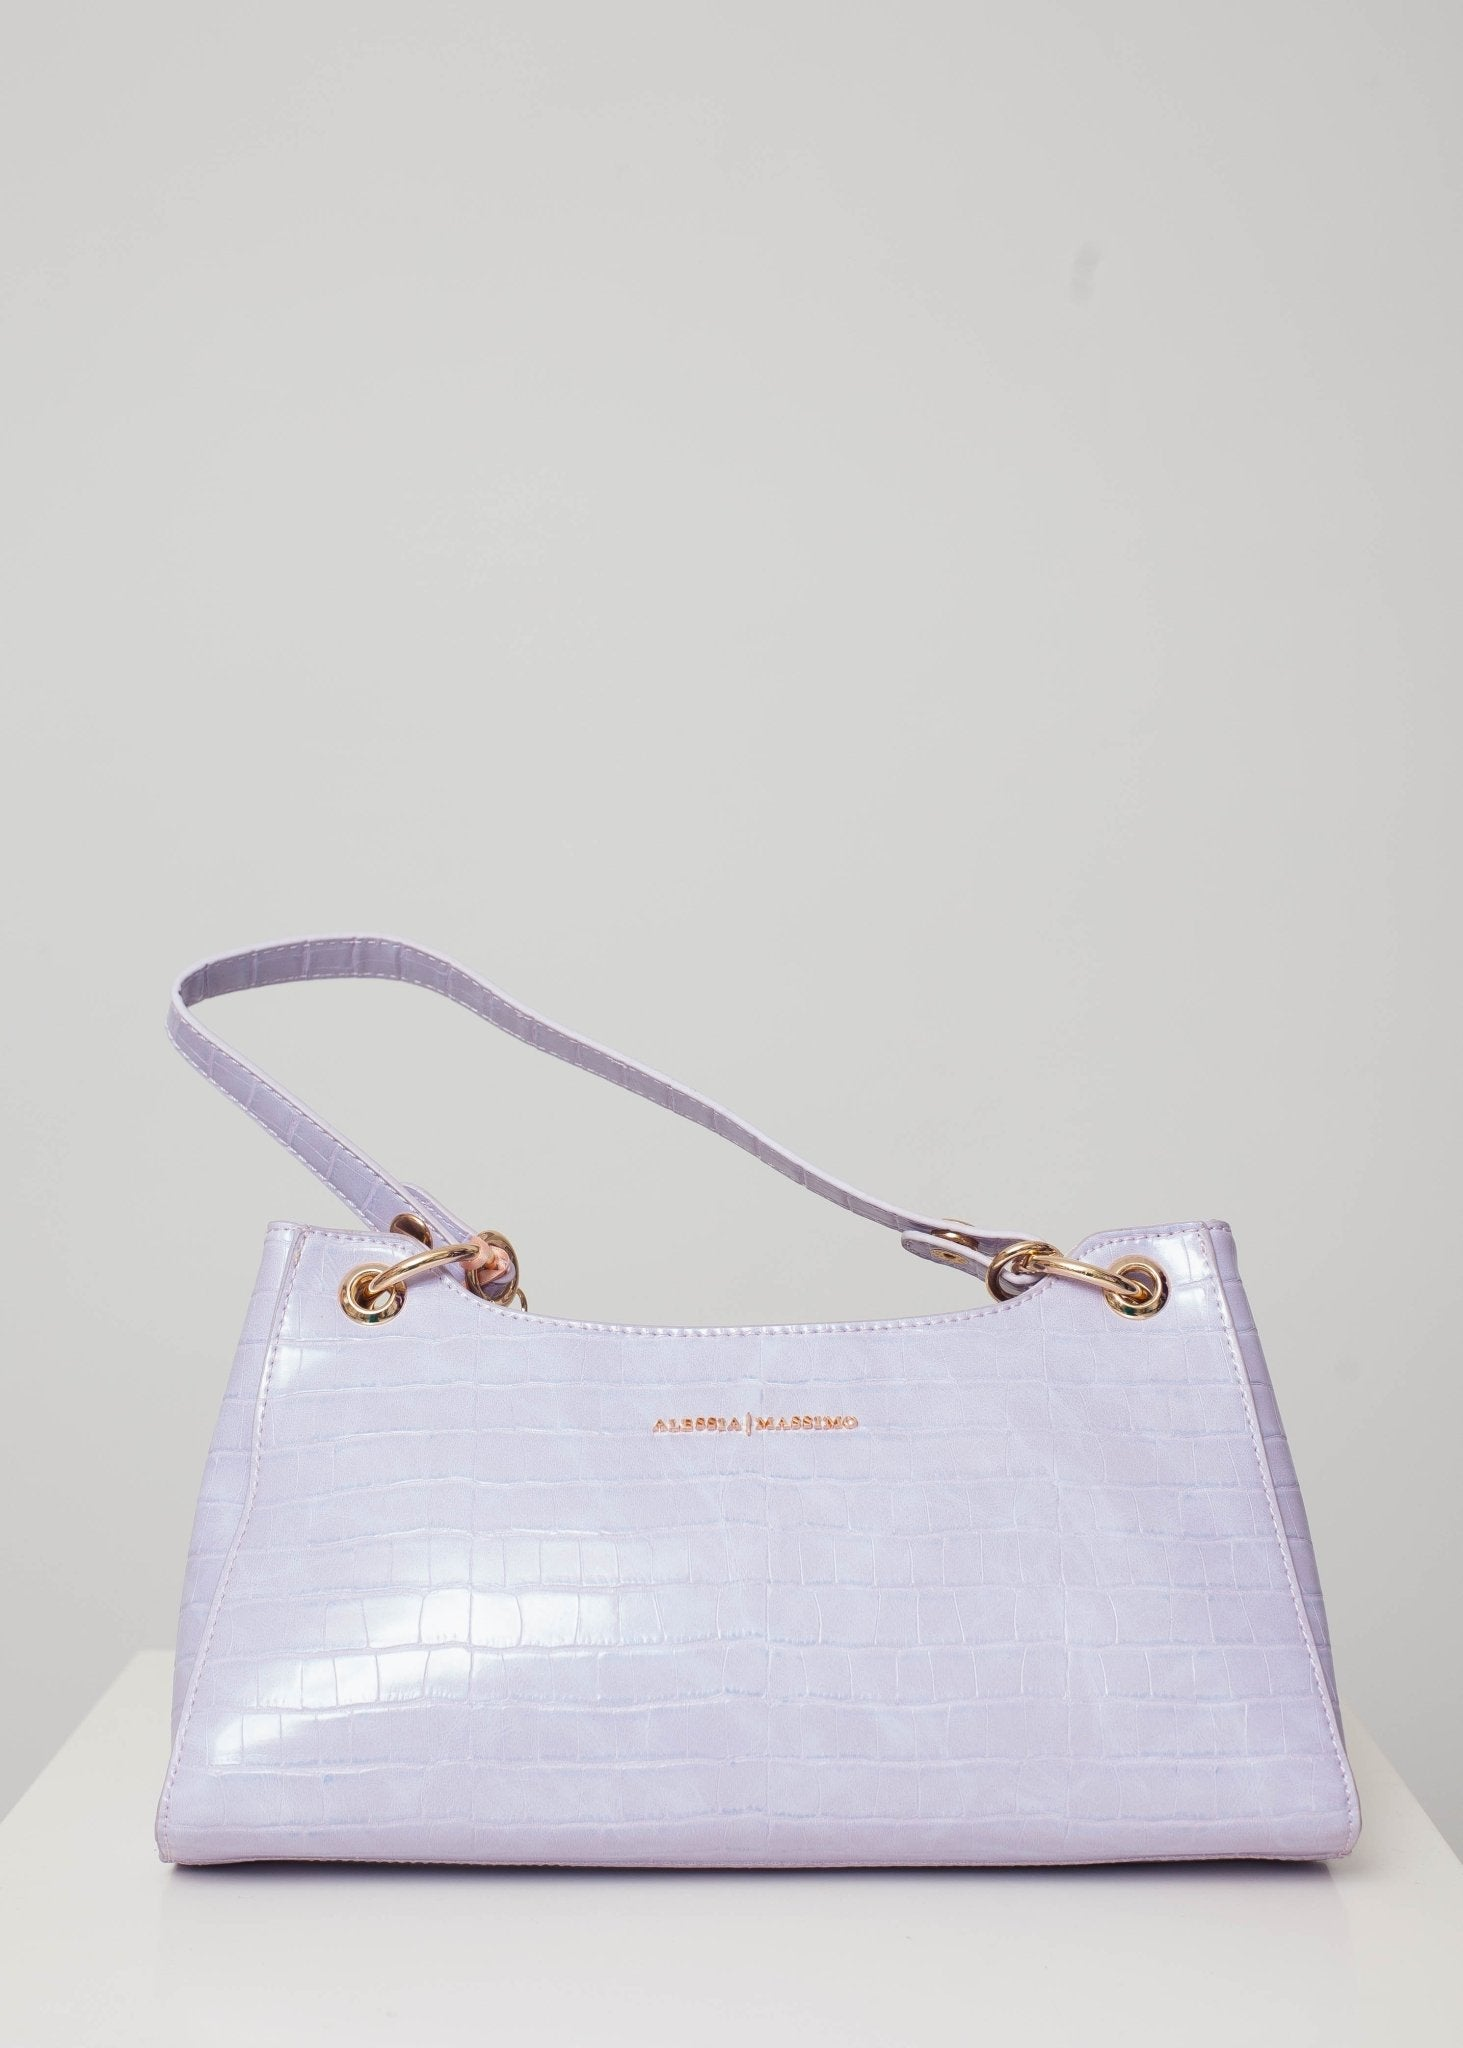 Alex Faux Croc Bag In Lilac - The Walk in Wardrobe